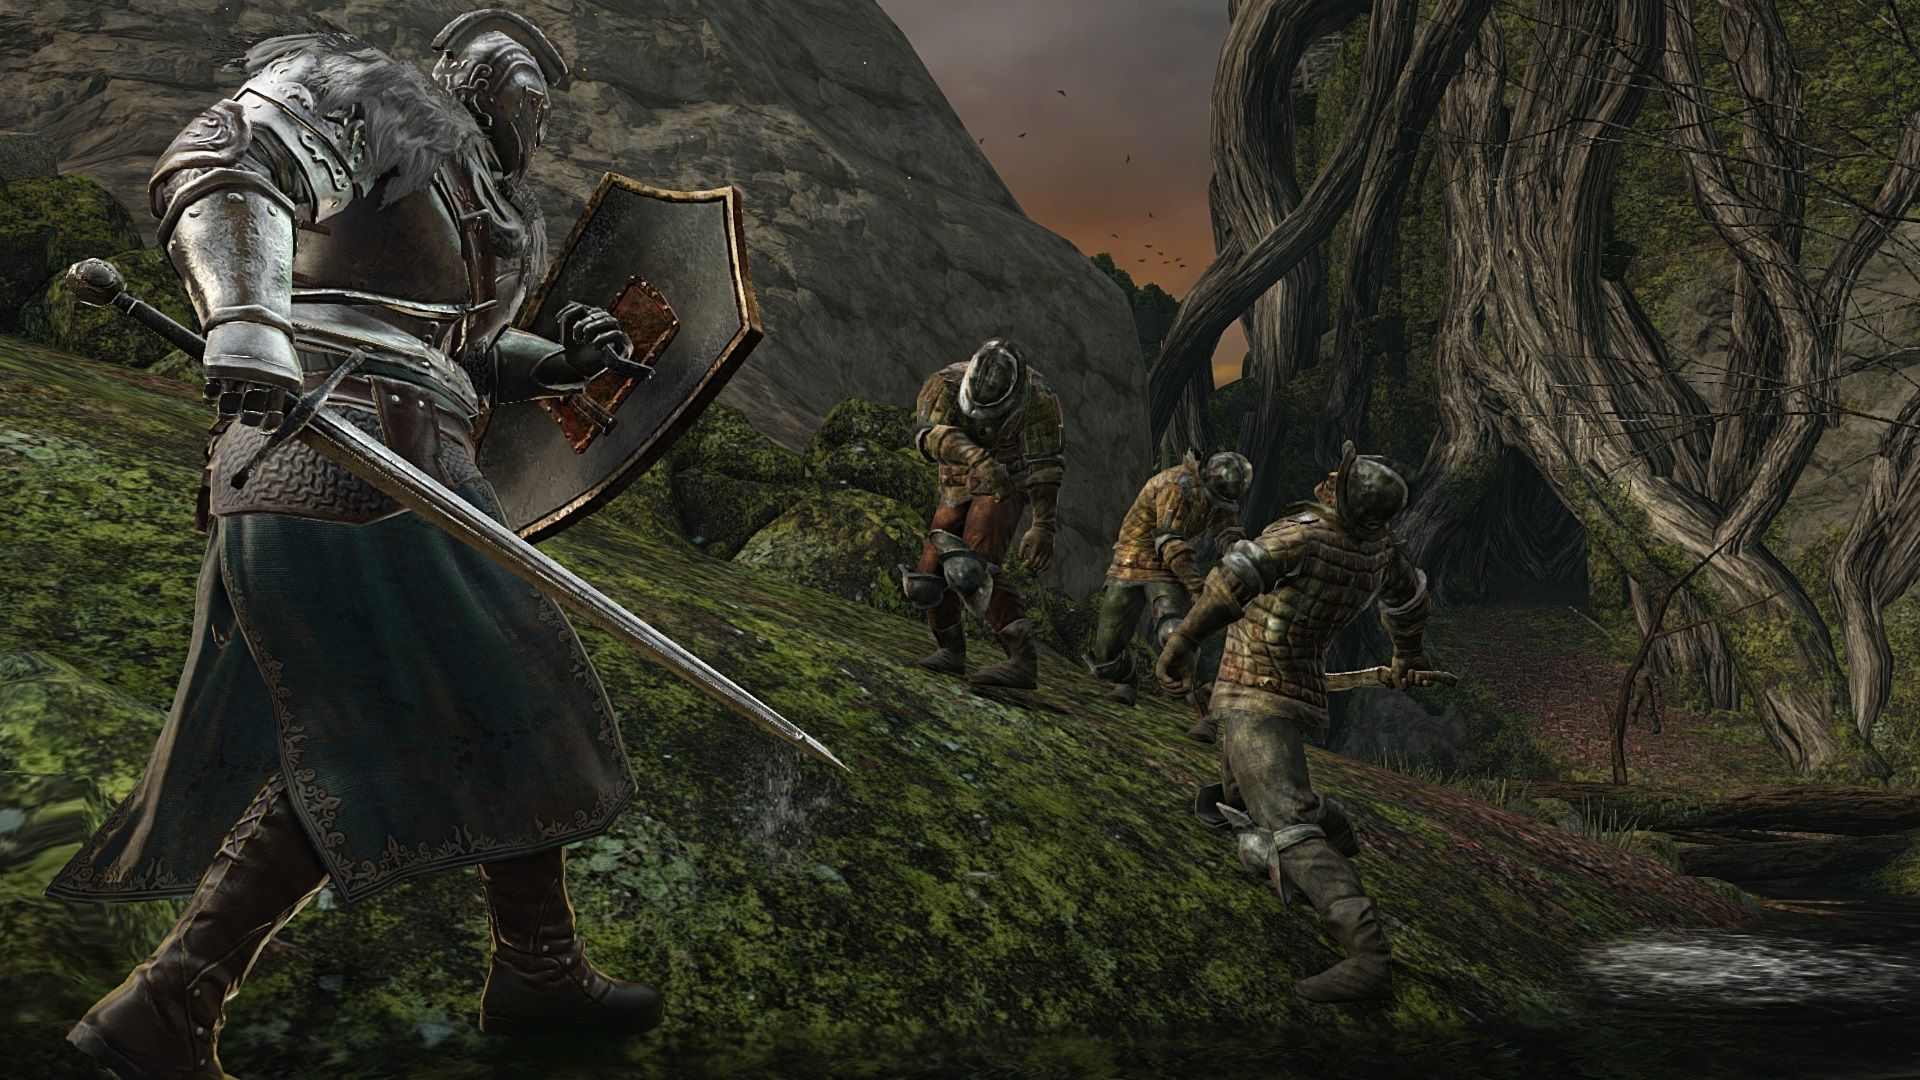 Dark Souls Ii Lost Crowns Trilogy Dlc Coming This Summer Dark